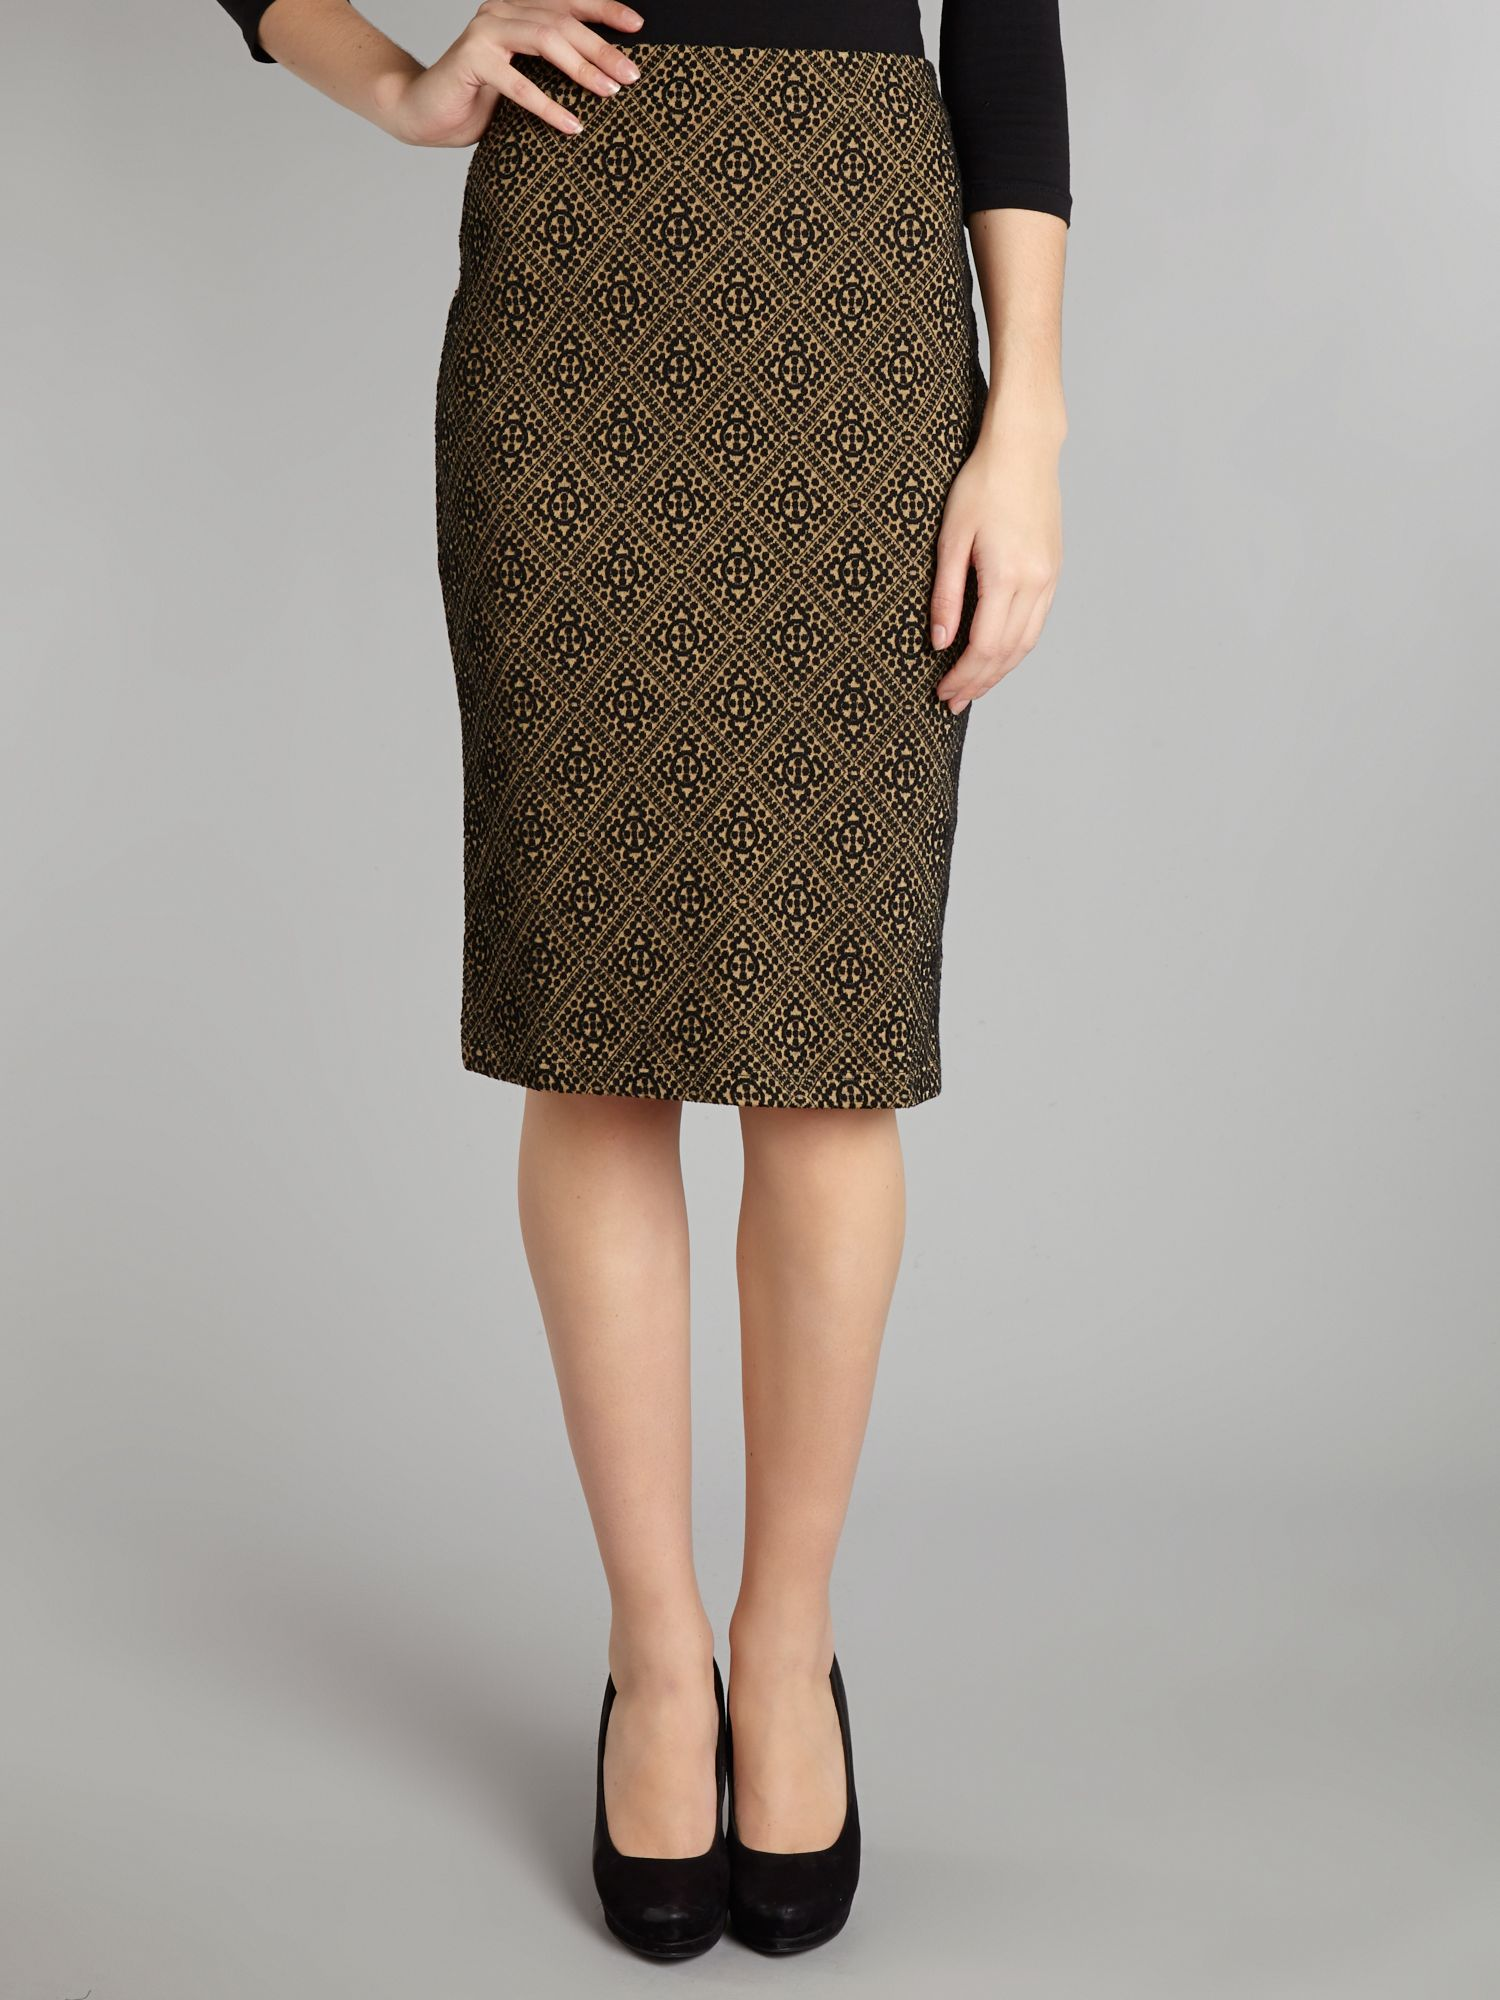 Rosati high waisted pencil skirt